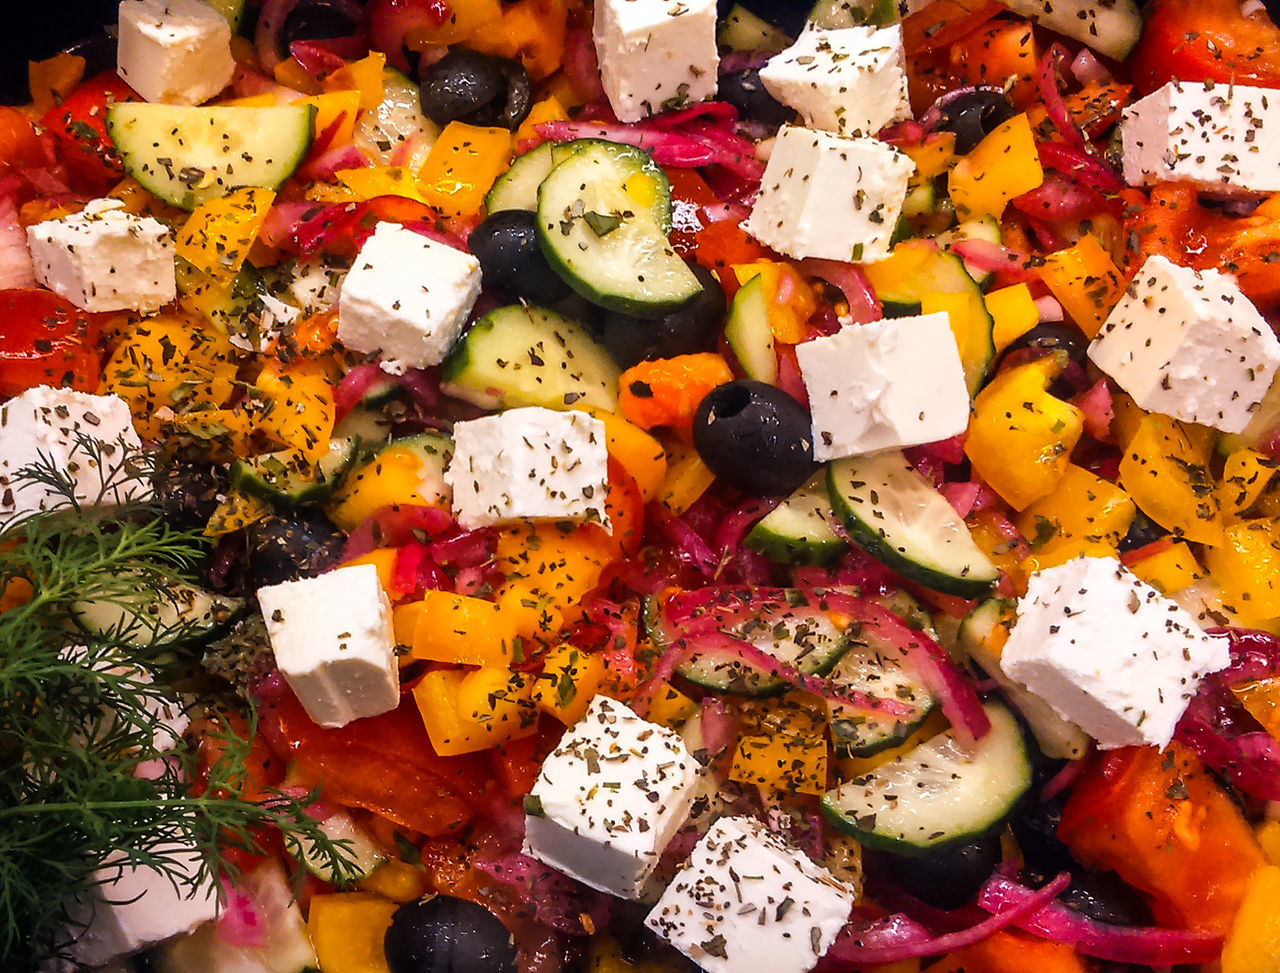 Salad of red and yellow bell peppers, black olives and feta cheese Abundance Backgrounds Bell Black Cheese Close-up Day Feta Food Freshness Full Frame Healthy Eating Indoors  Large Group Of Objects Market Multi Colored No People Olives Peppers Ready-to-eat Red Salad Variation Yellow